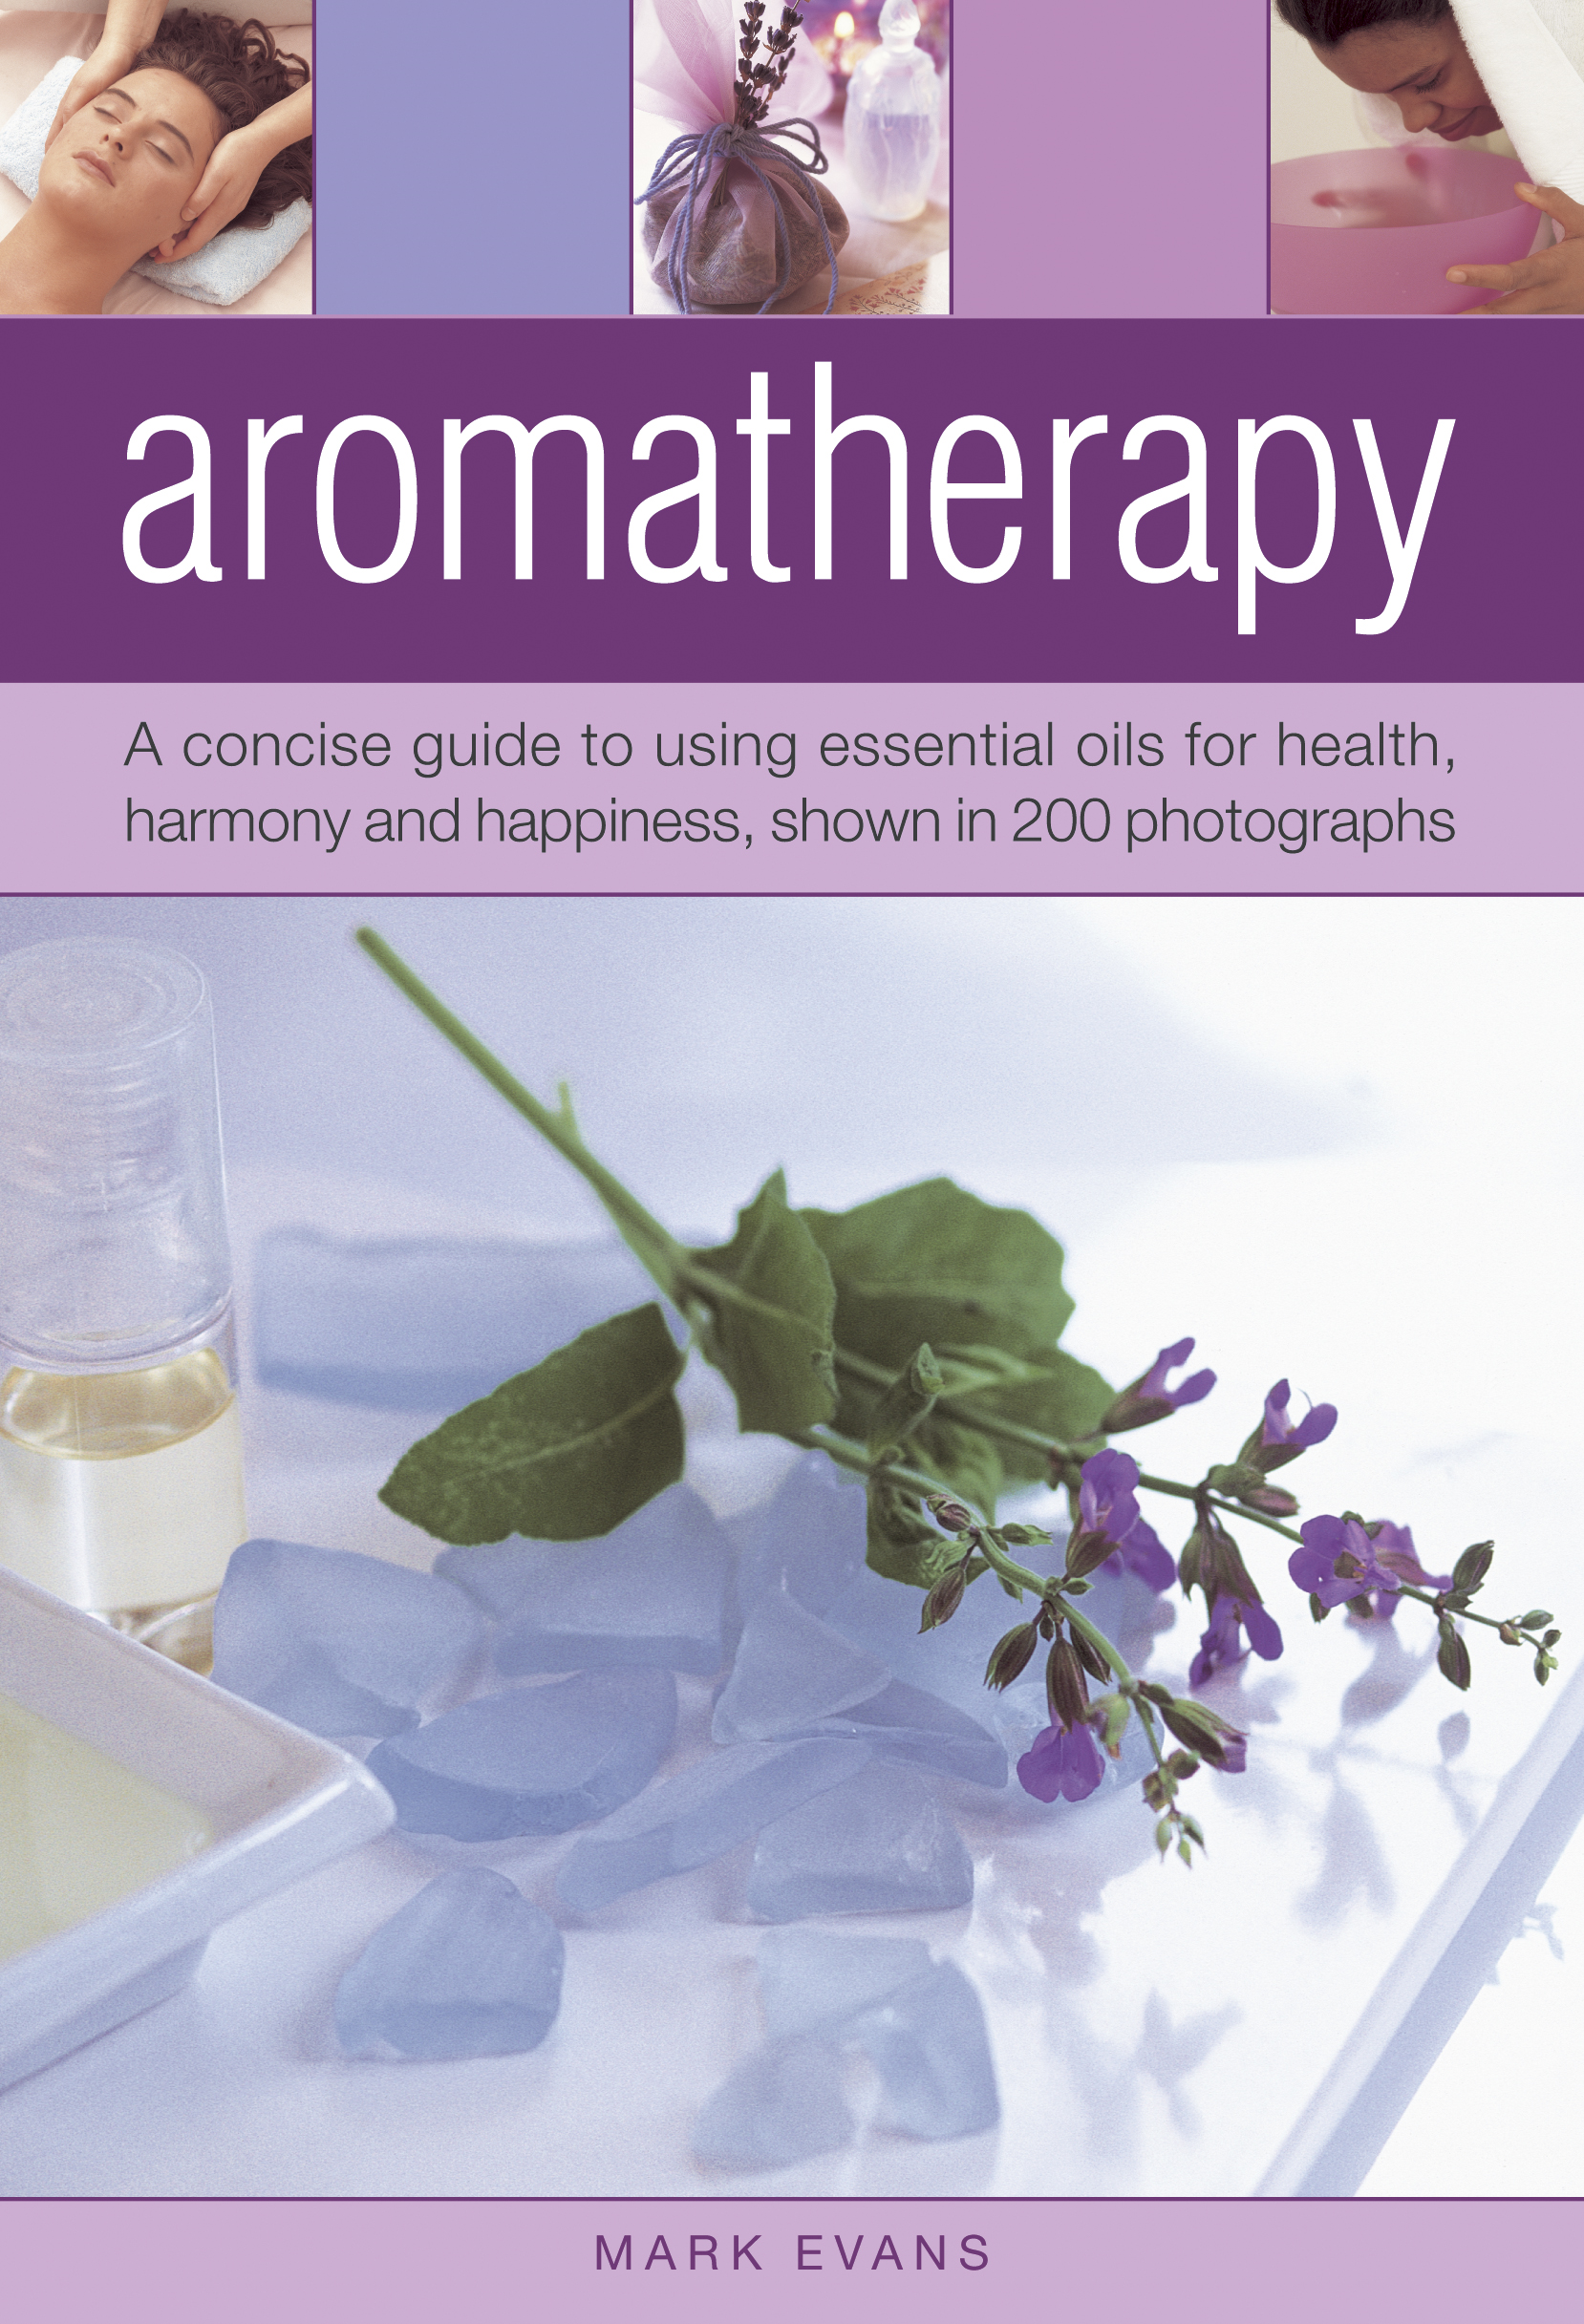 Aromatherapy A Concise Guide to Using Essential Oils For Health,  Harmony and Happiness,  Shown in 200 Photographs